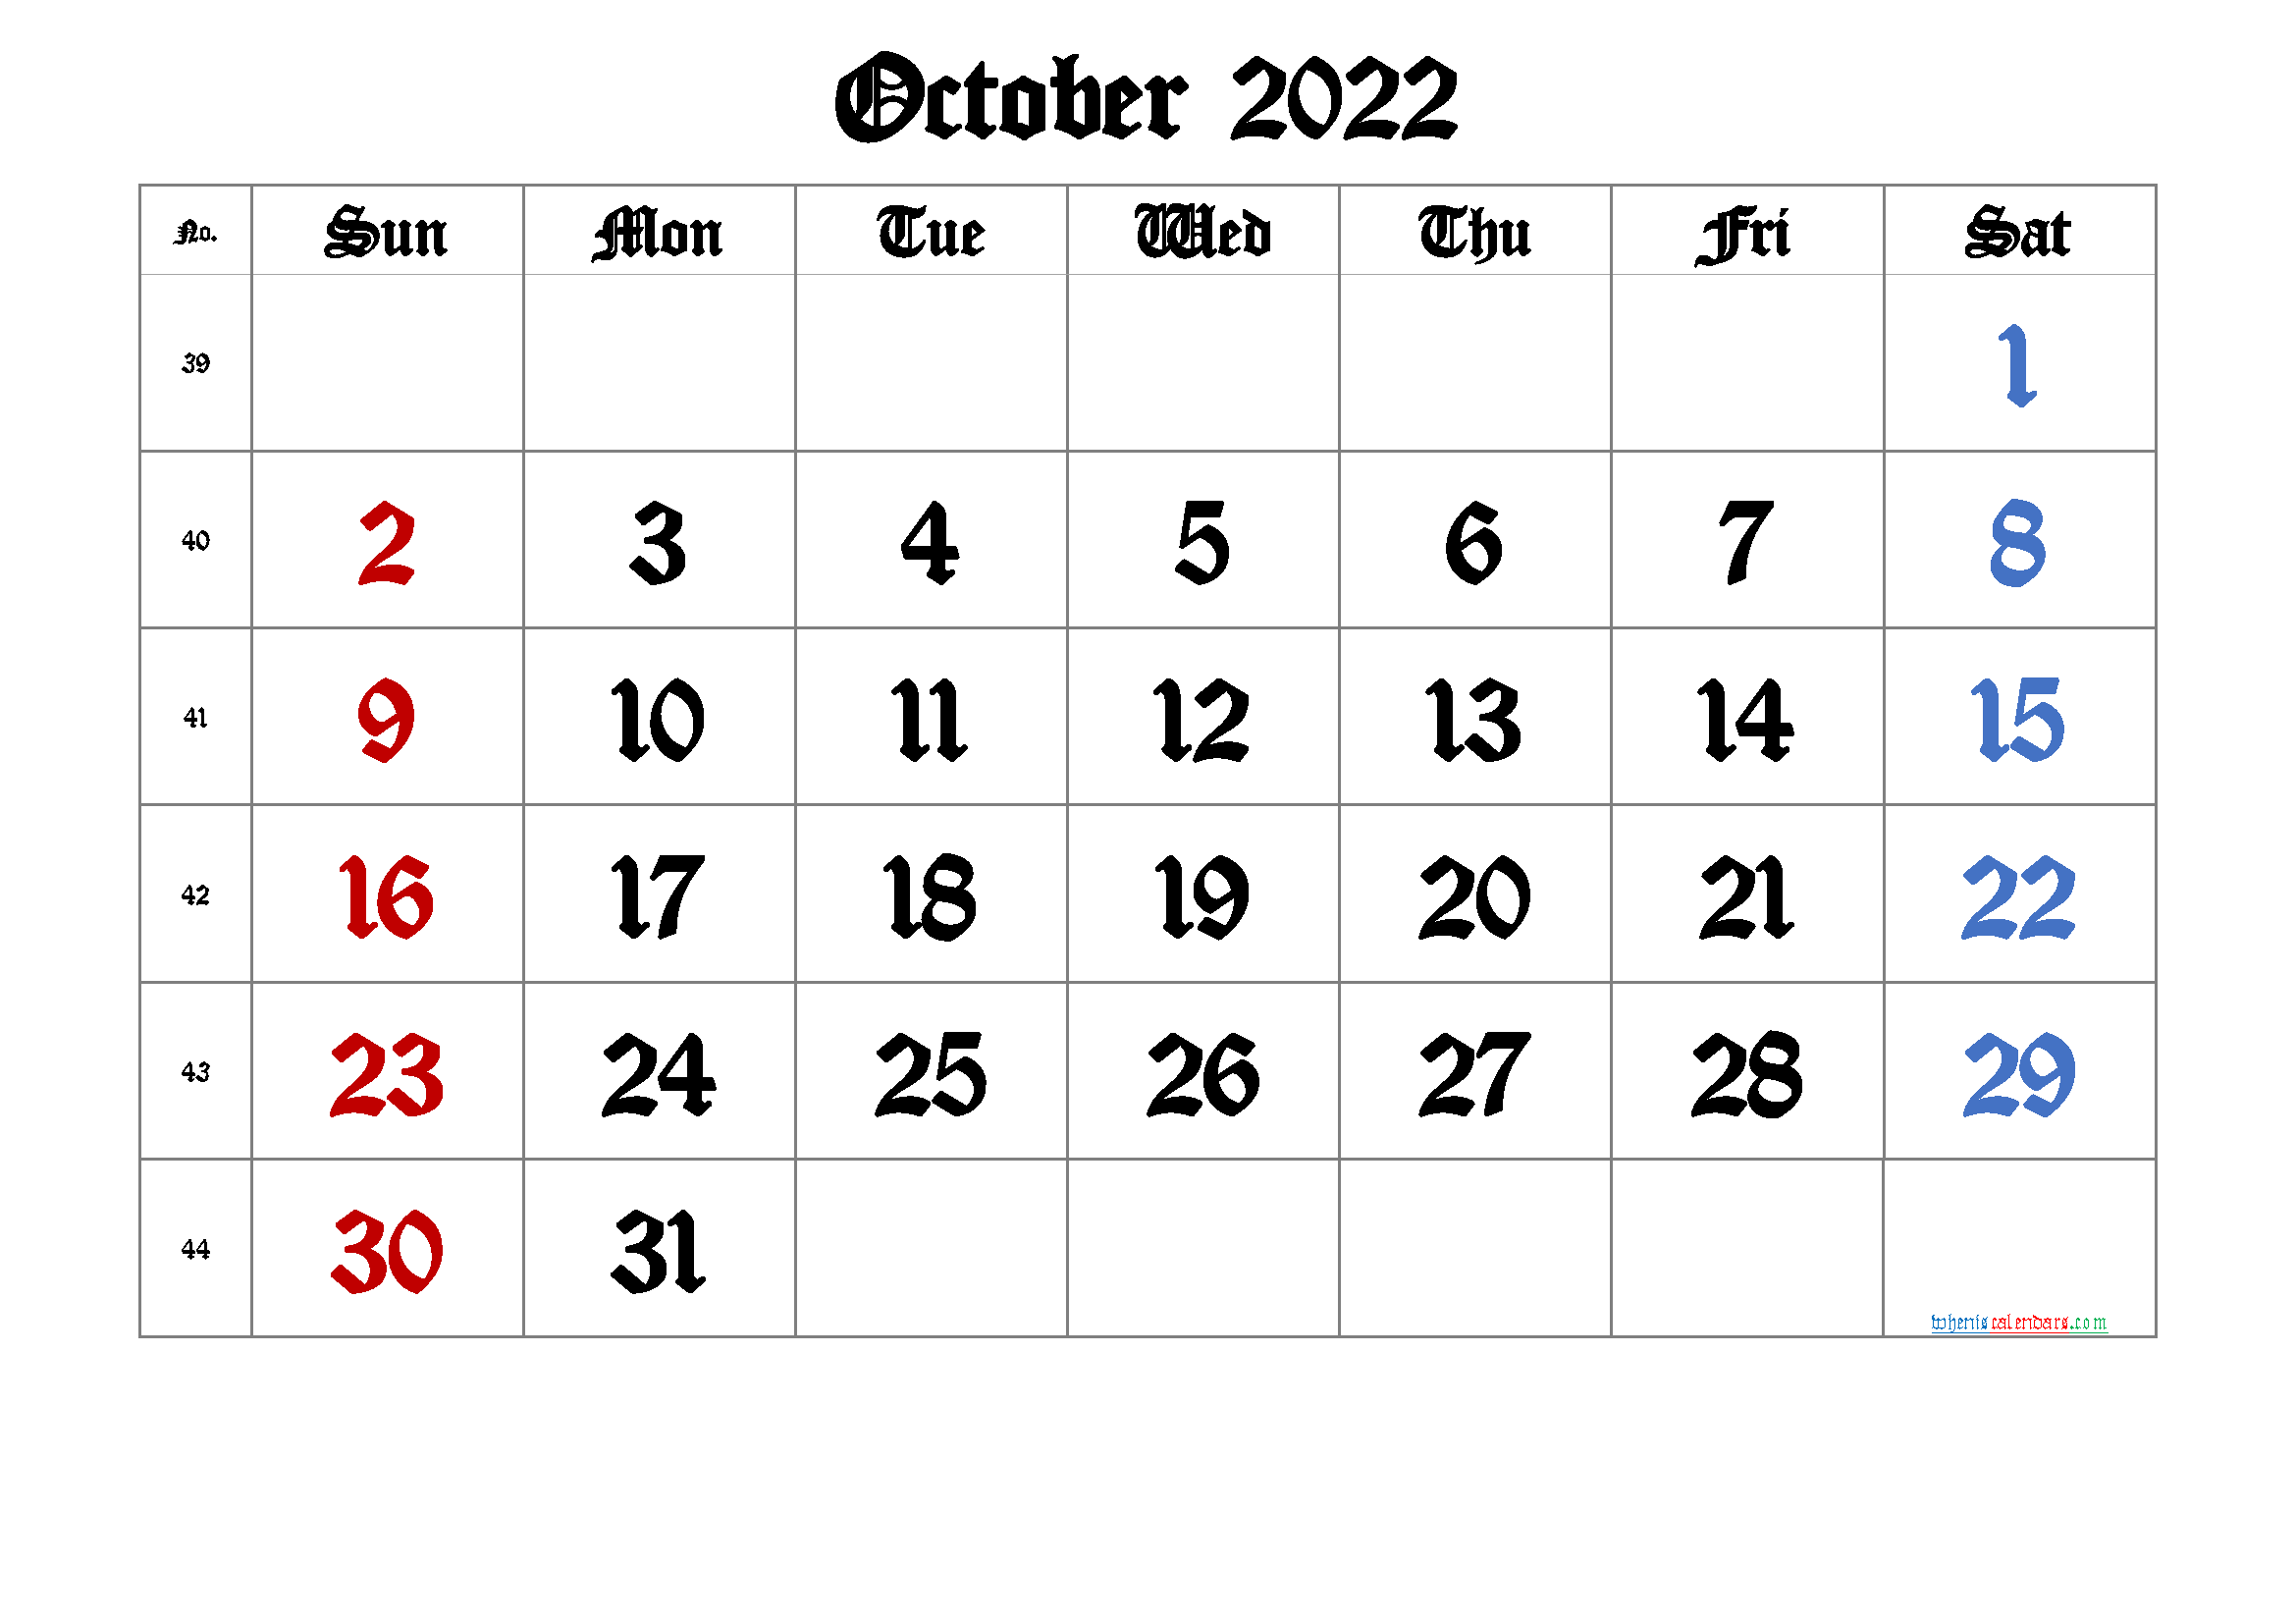 October 2022 Printable Calendar with Week Numbers